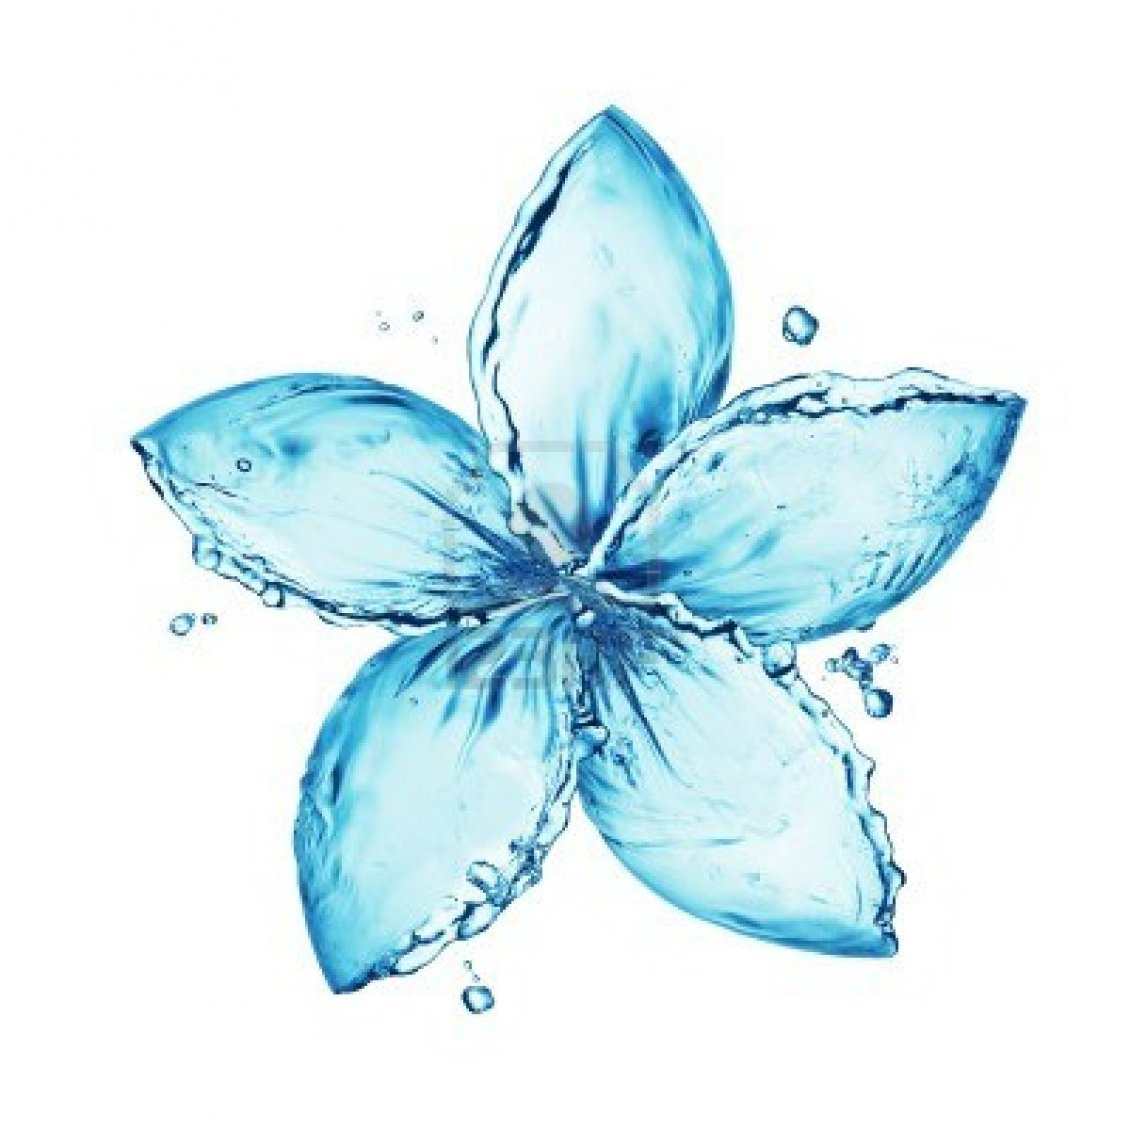 Download Wallpaper Awesome blue flower made of water